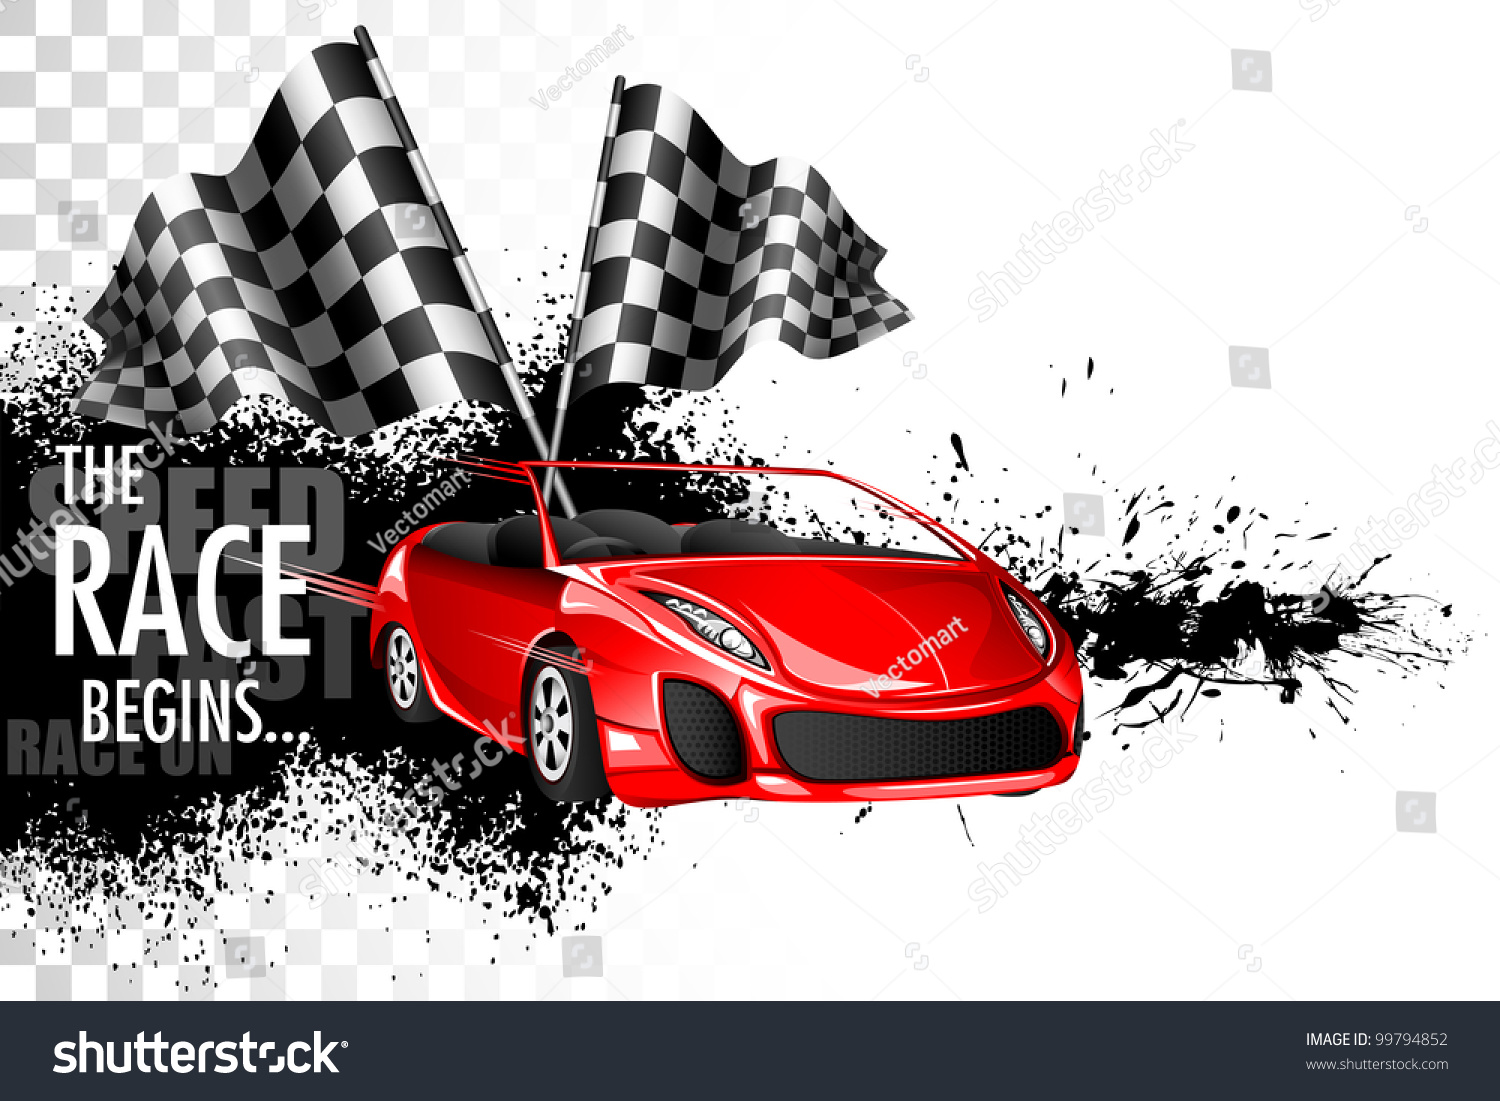 Design car flags - Illustration Of Racing Car With Checker Flag On Grungy Background